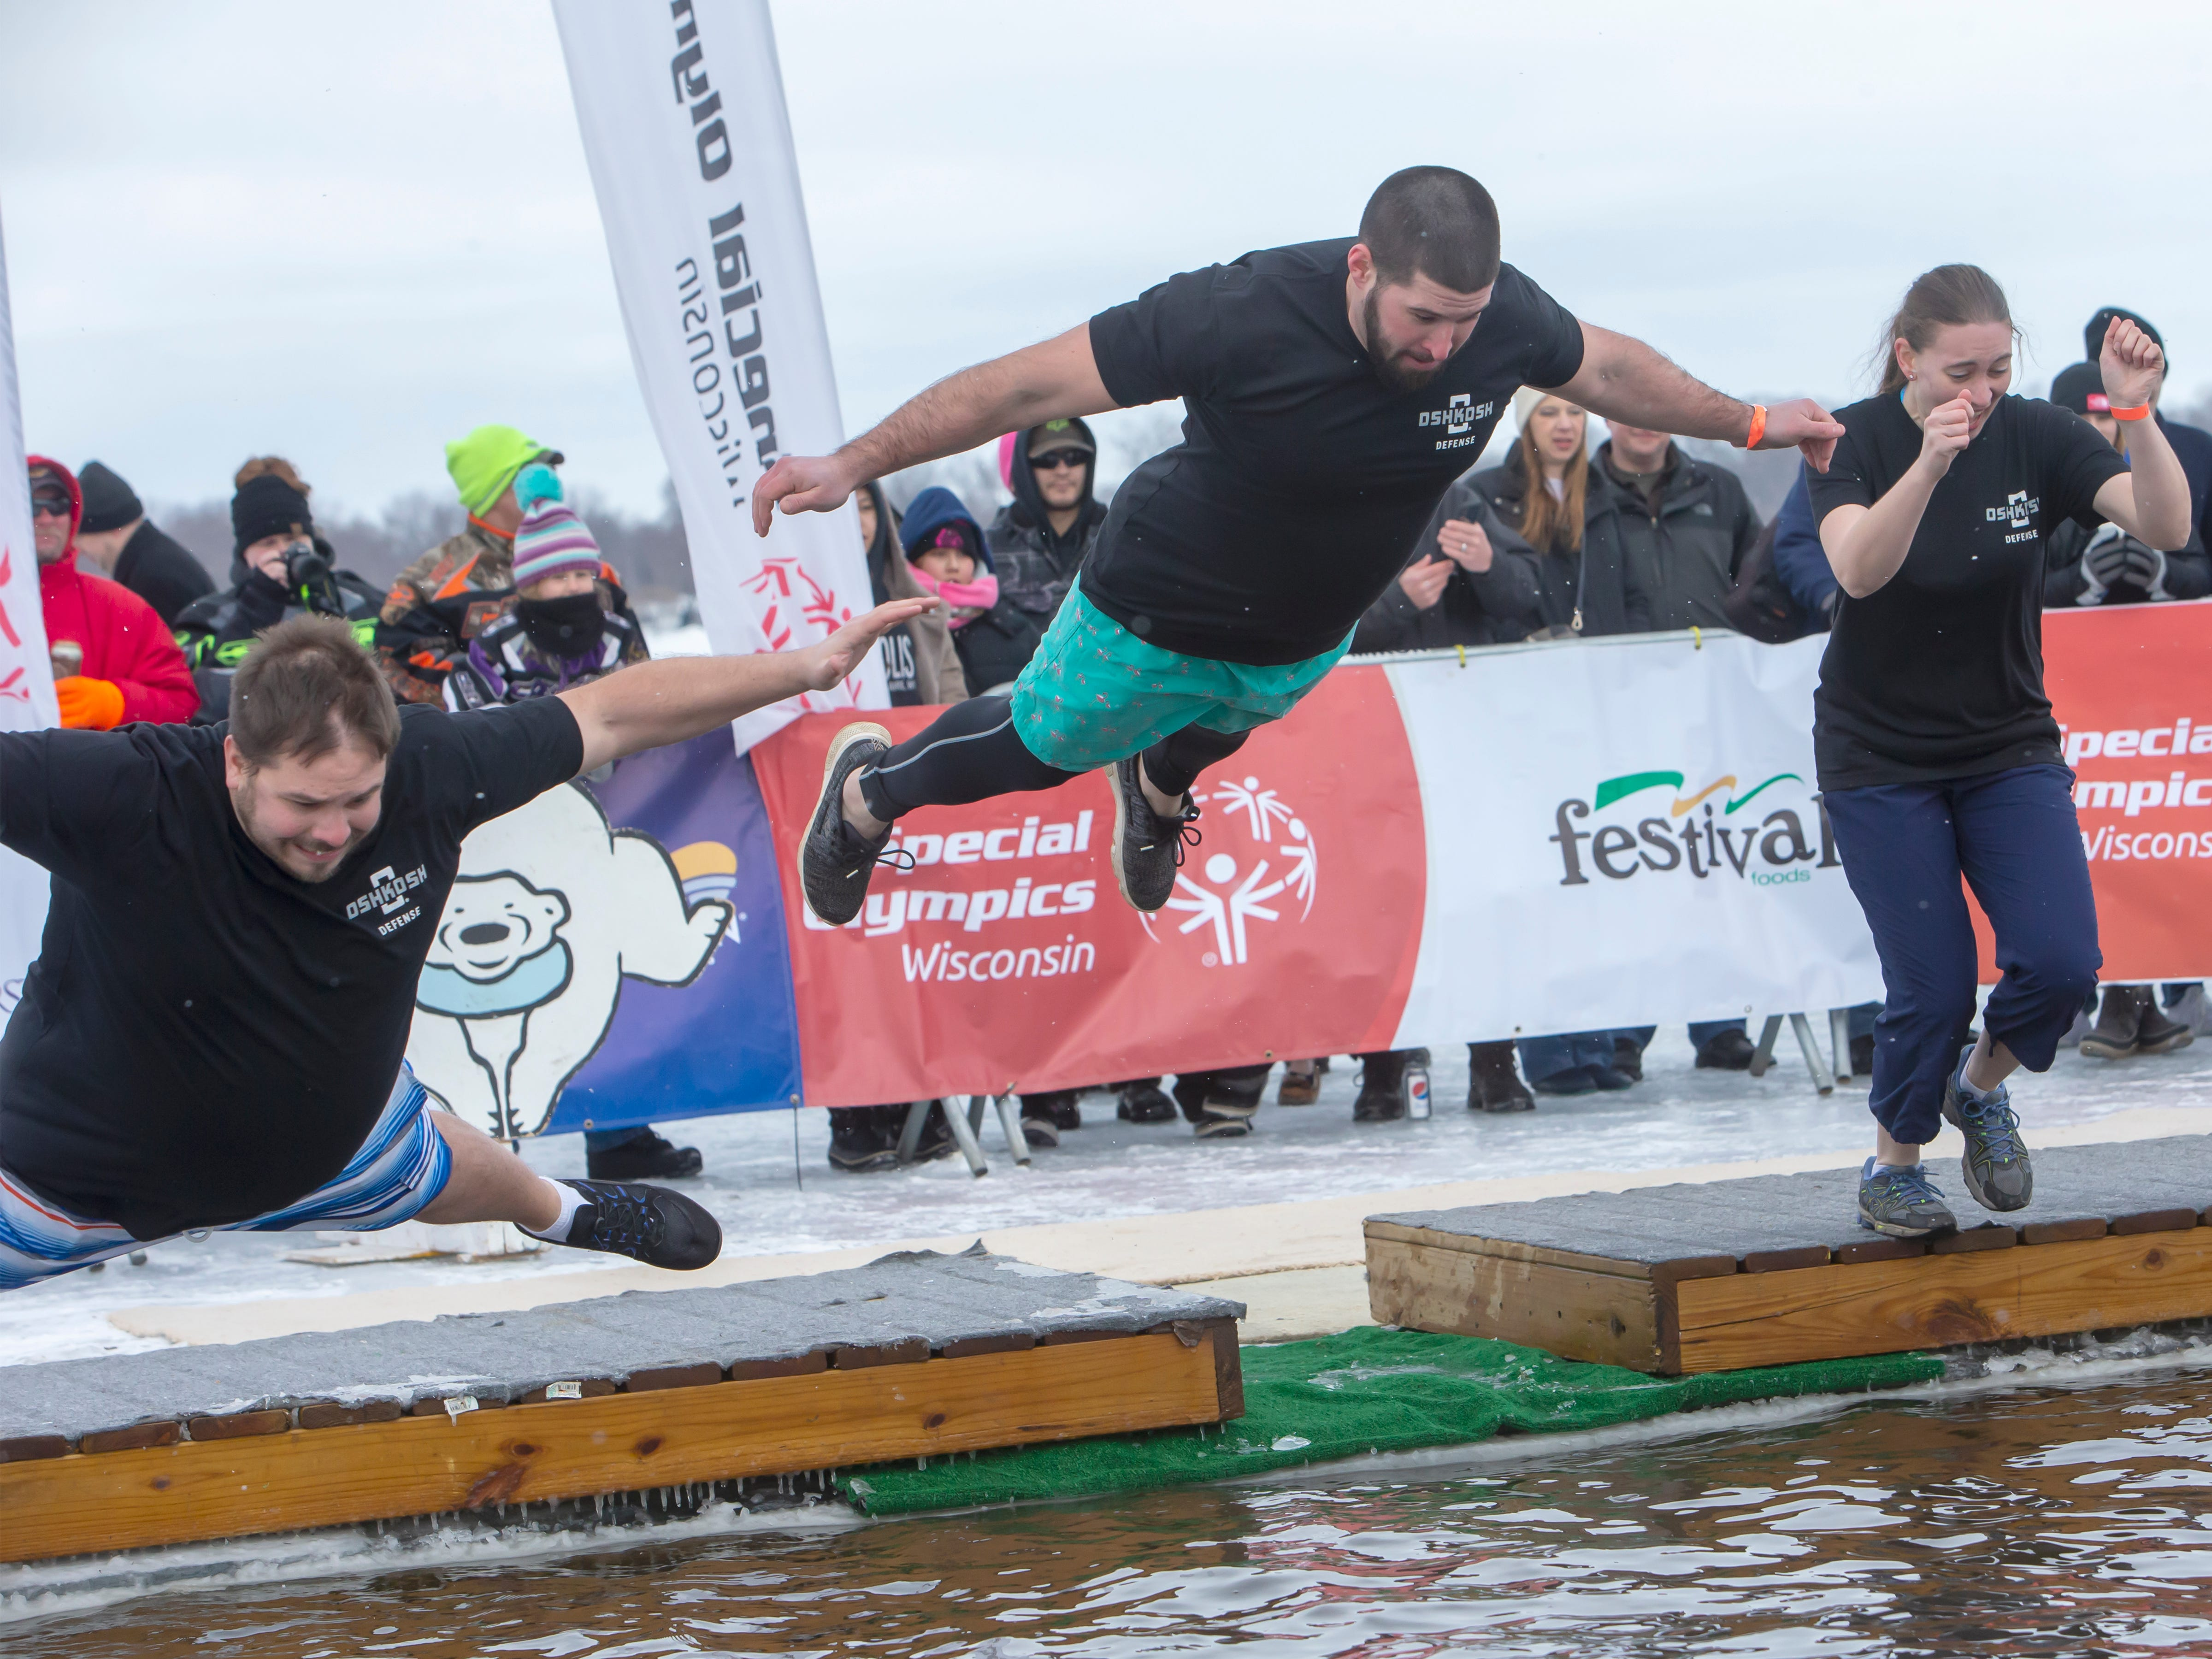 Oshkosh Defense employees brave the freezing water during the Special Olympics Wisconsin Polar Plunge in Oshkosh, Wis., on Saturday, February 16, 2019, at Miller's Bay in Menominee Park.